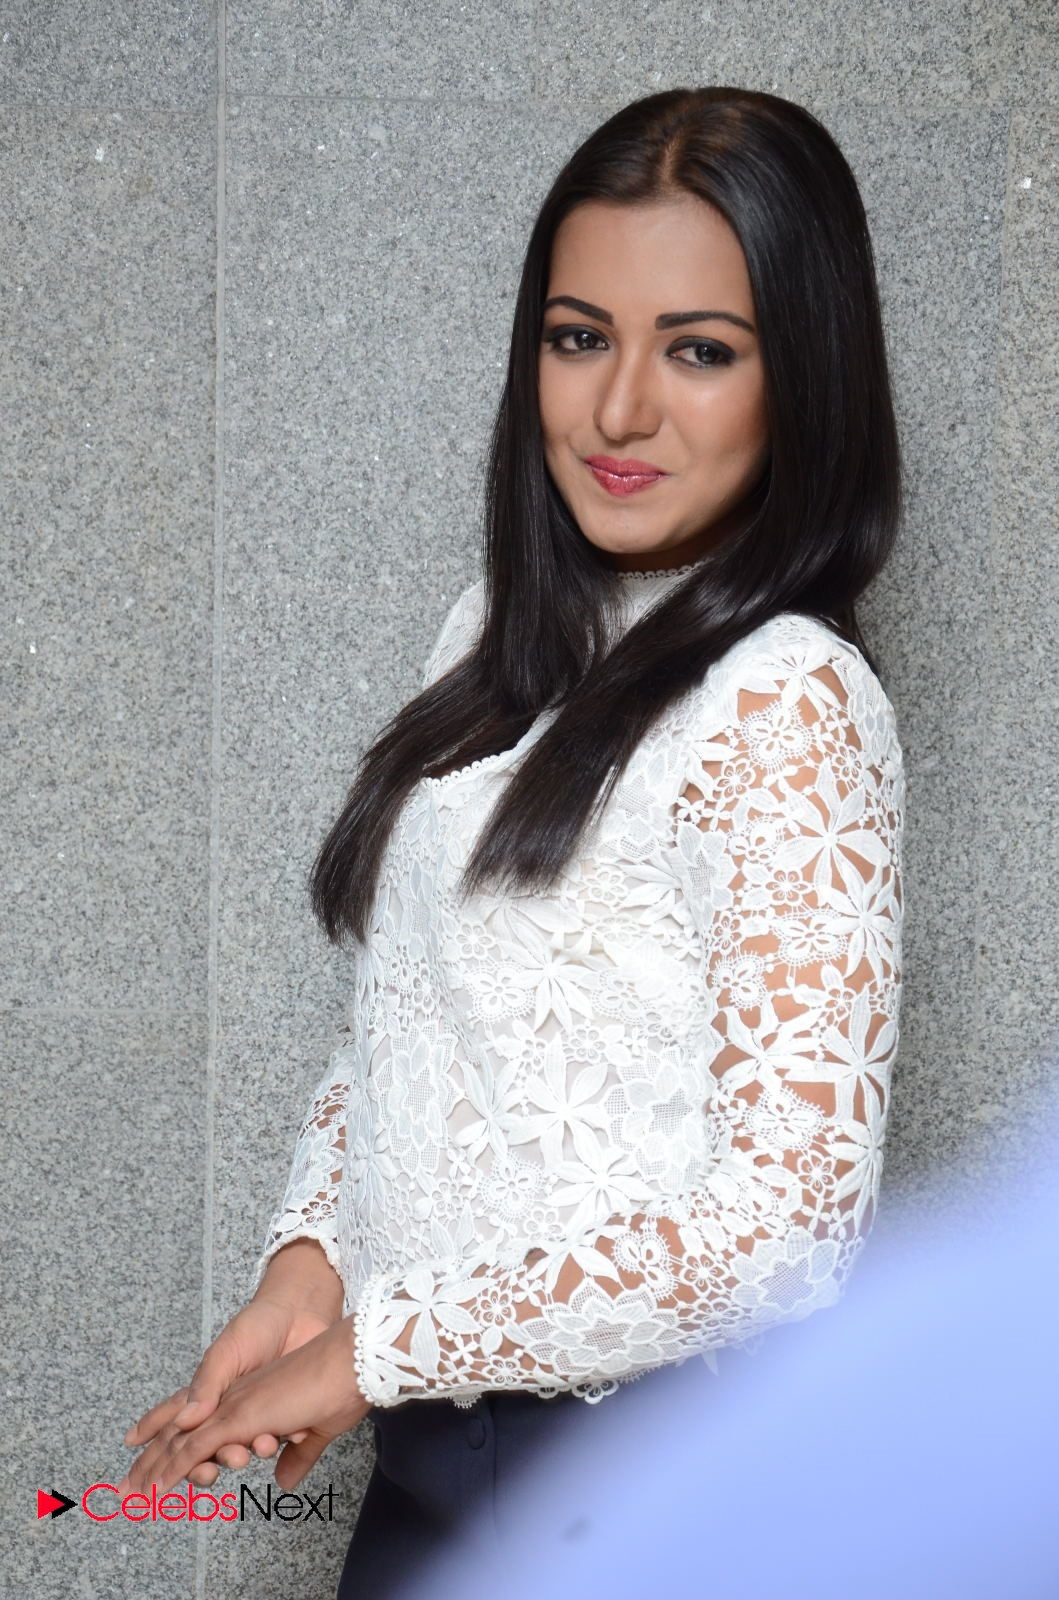 Catherine Tresa nude (52 images) Hacked, YouTube, cleavage